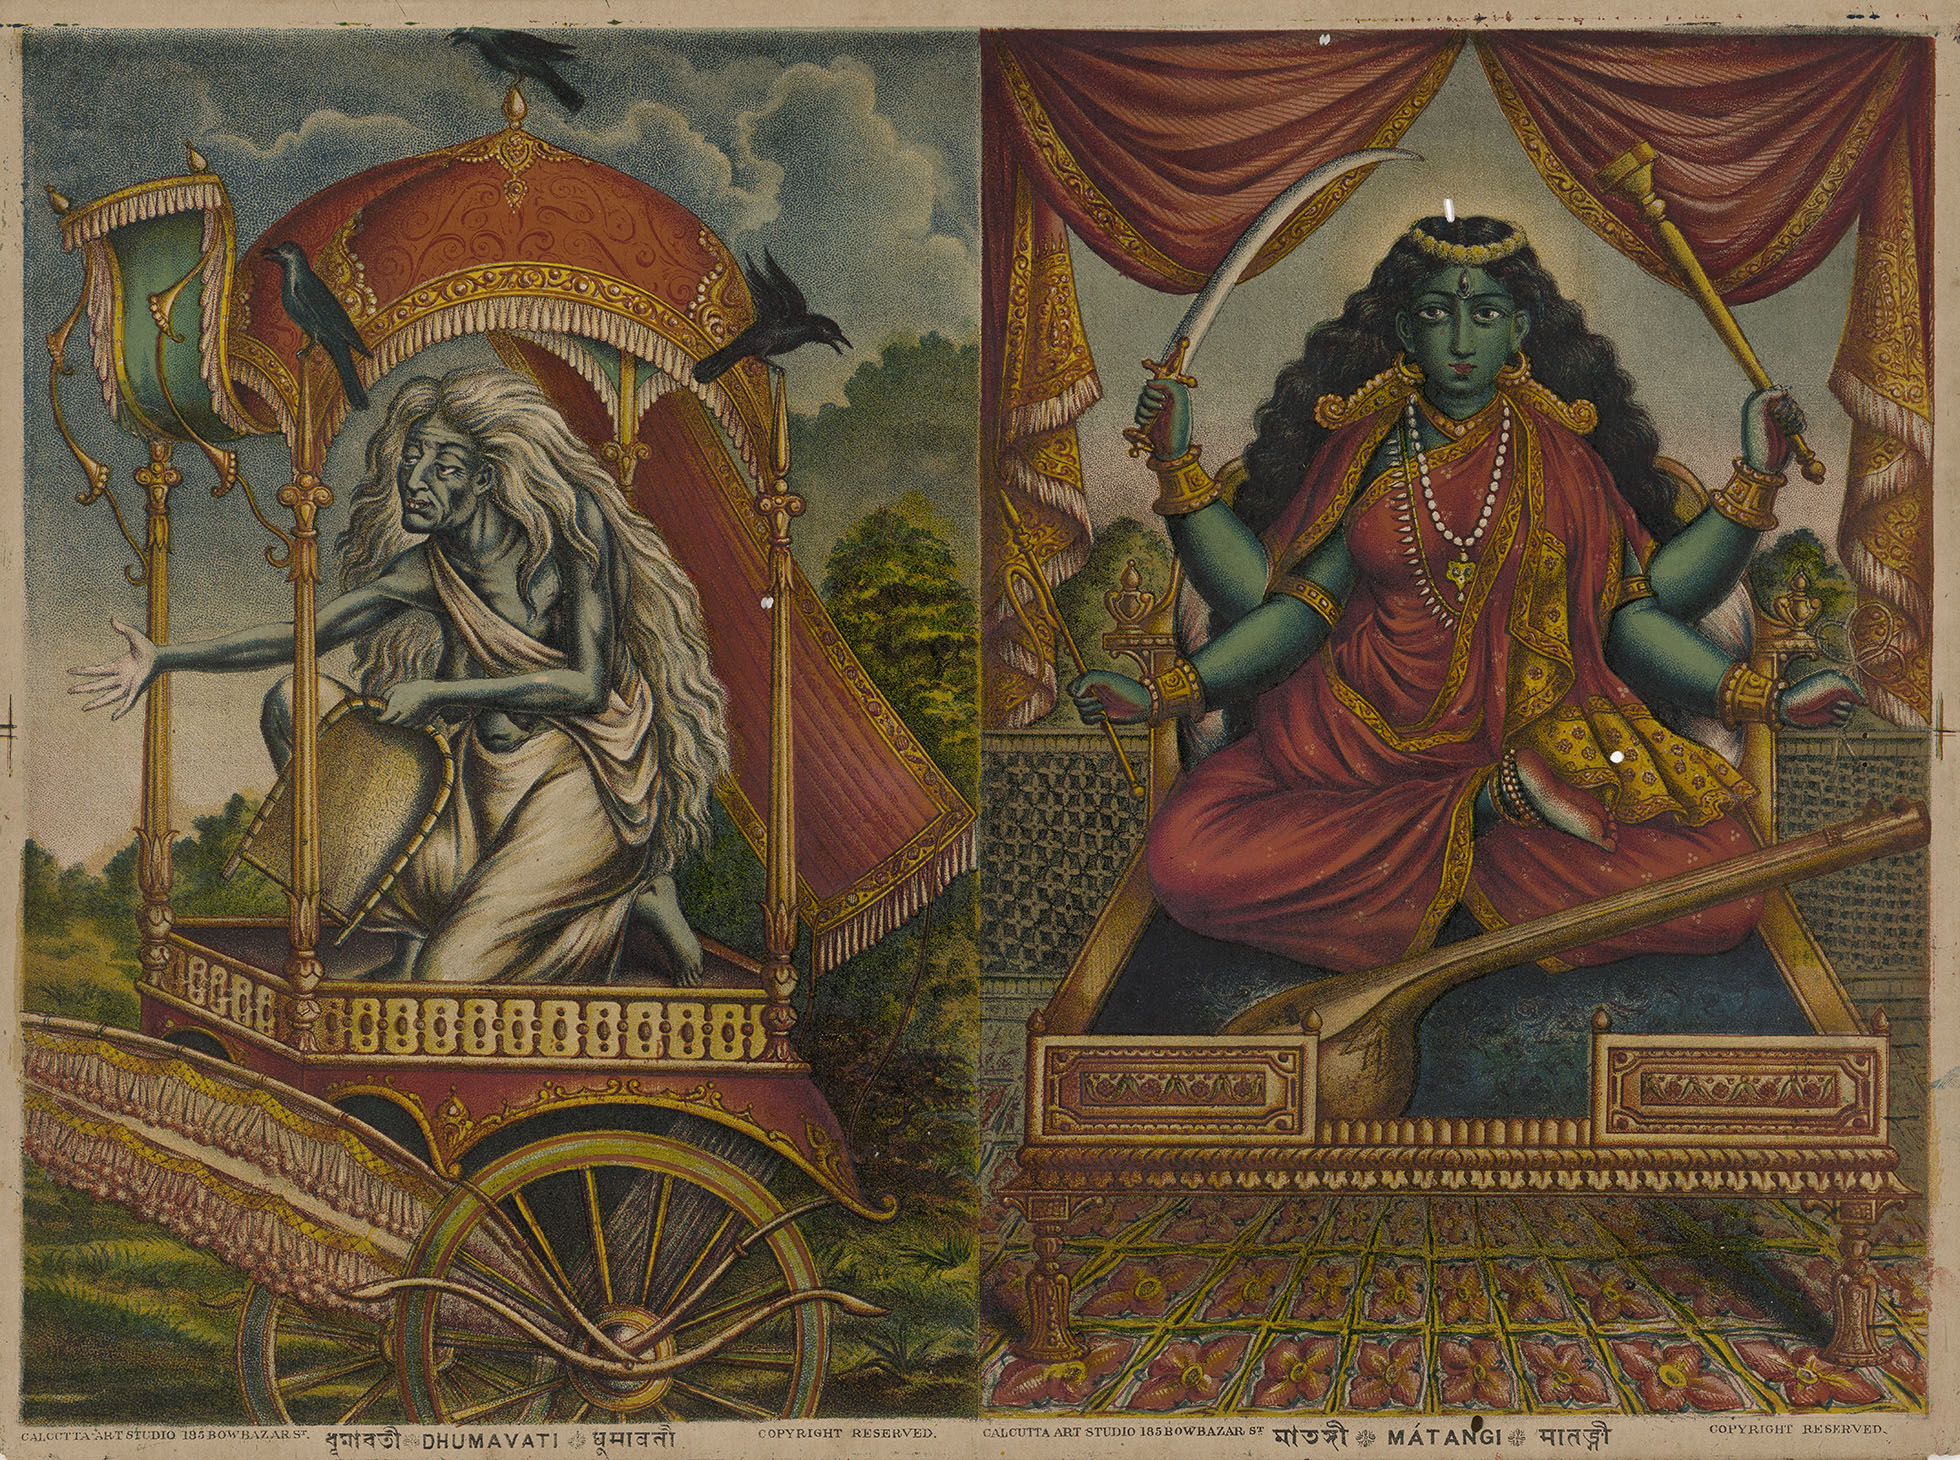 On the left the goddess Dhumavati is in a carriage. On the right, the goddess Matangi sits, holding a sword.